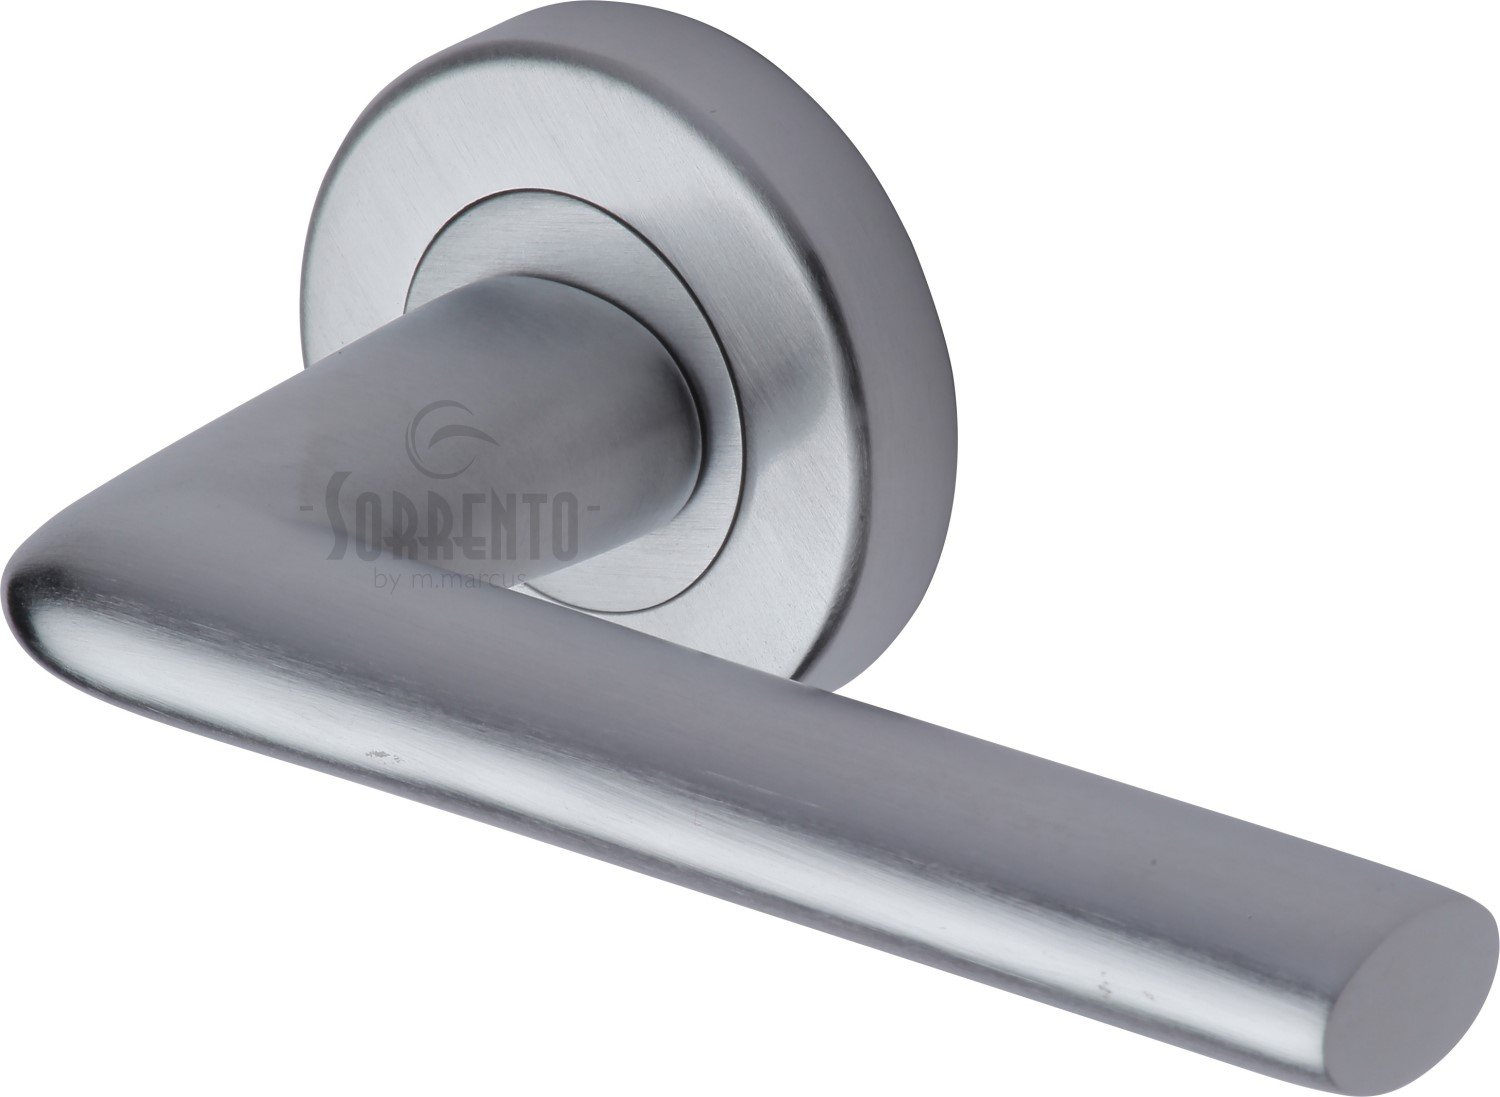 Sorrento Door Handle Lever Latch on Round Rose Lena Design SC-2352